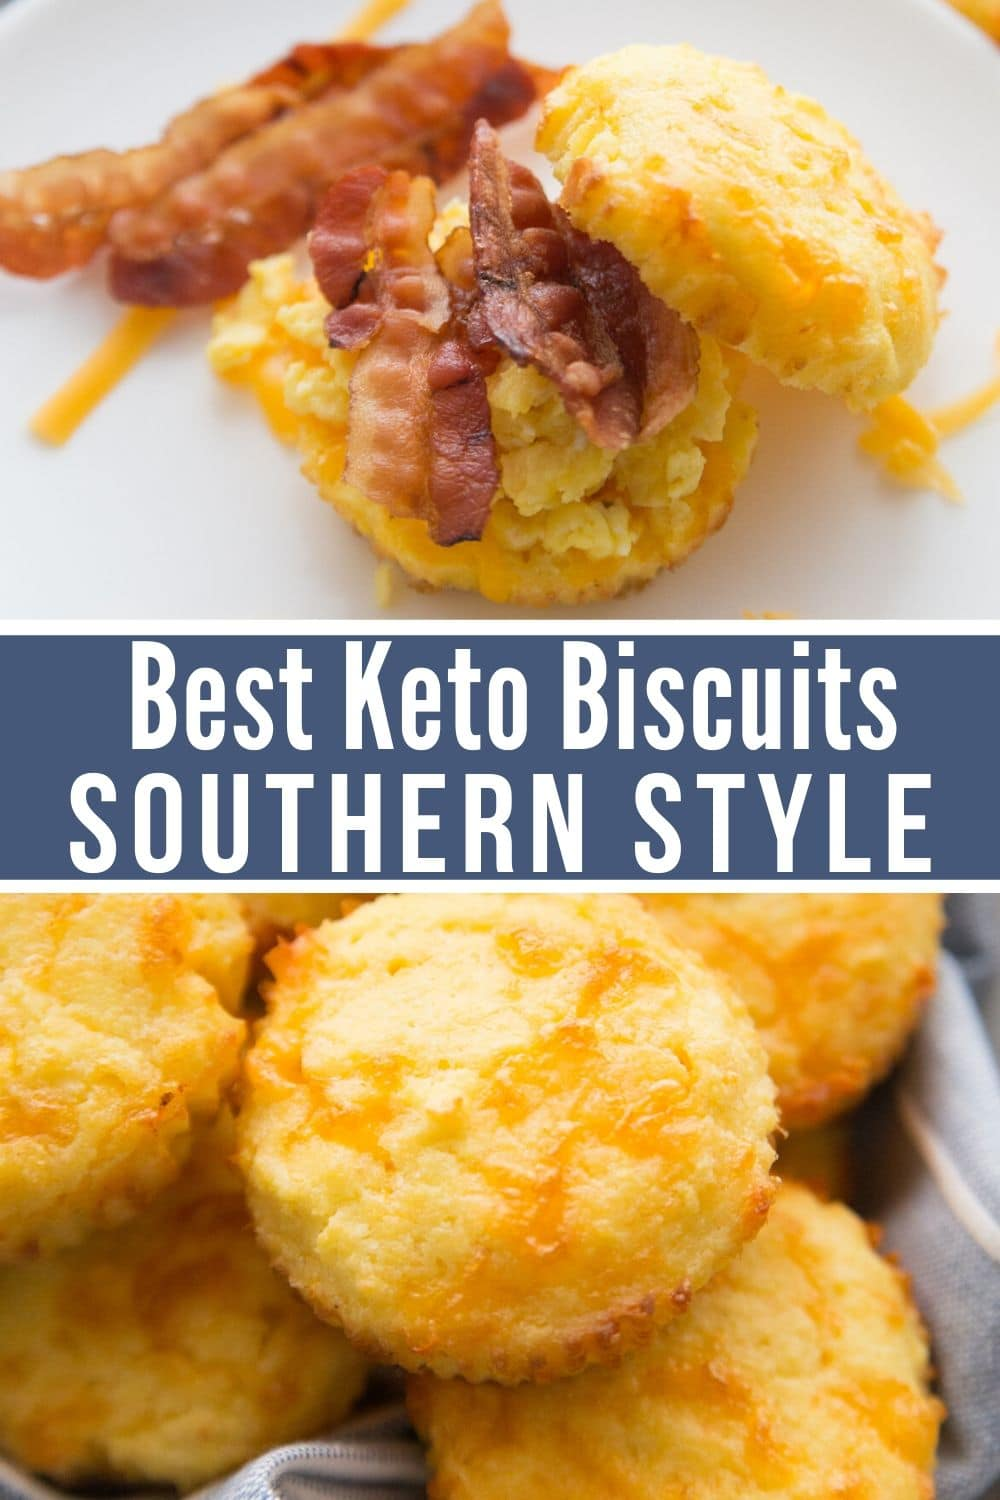 Image of the best keto biscuits with bacon and sausage on them.